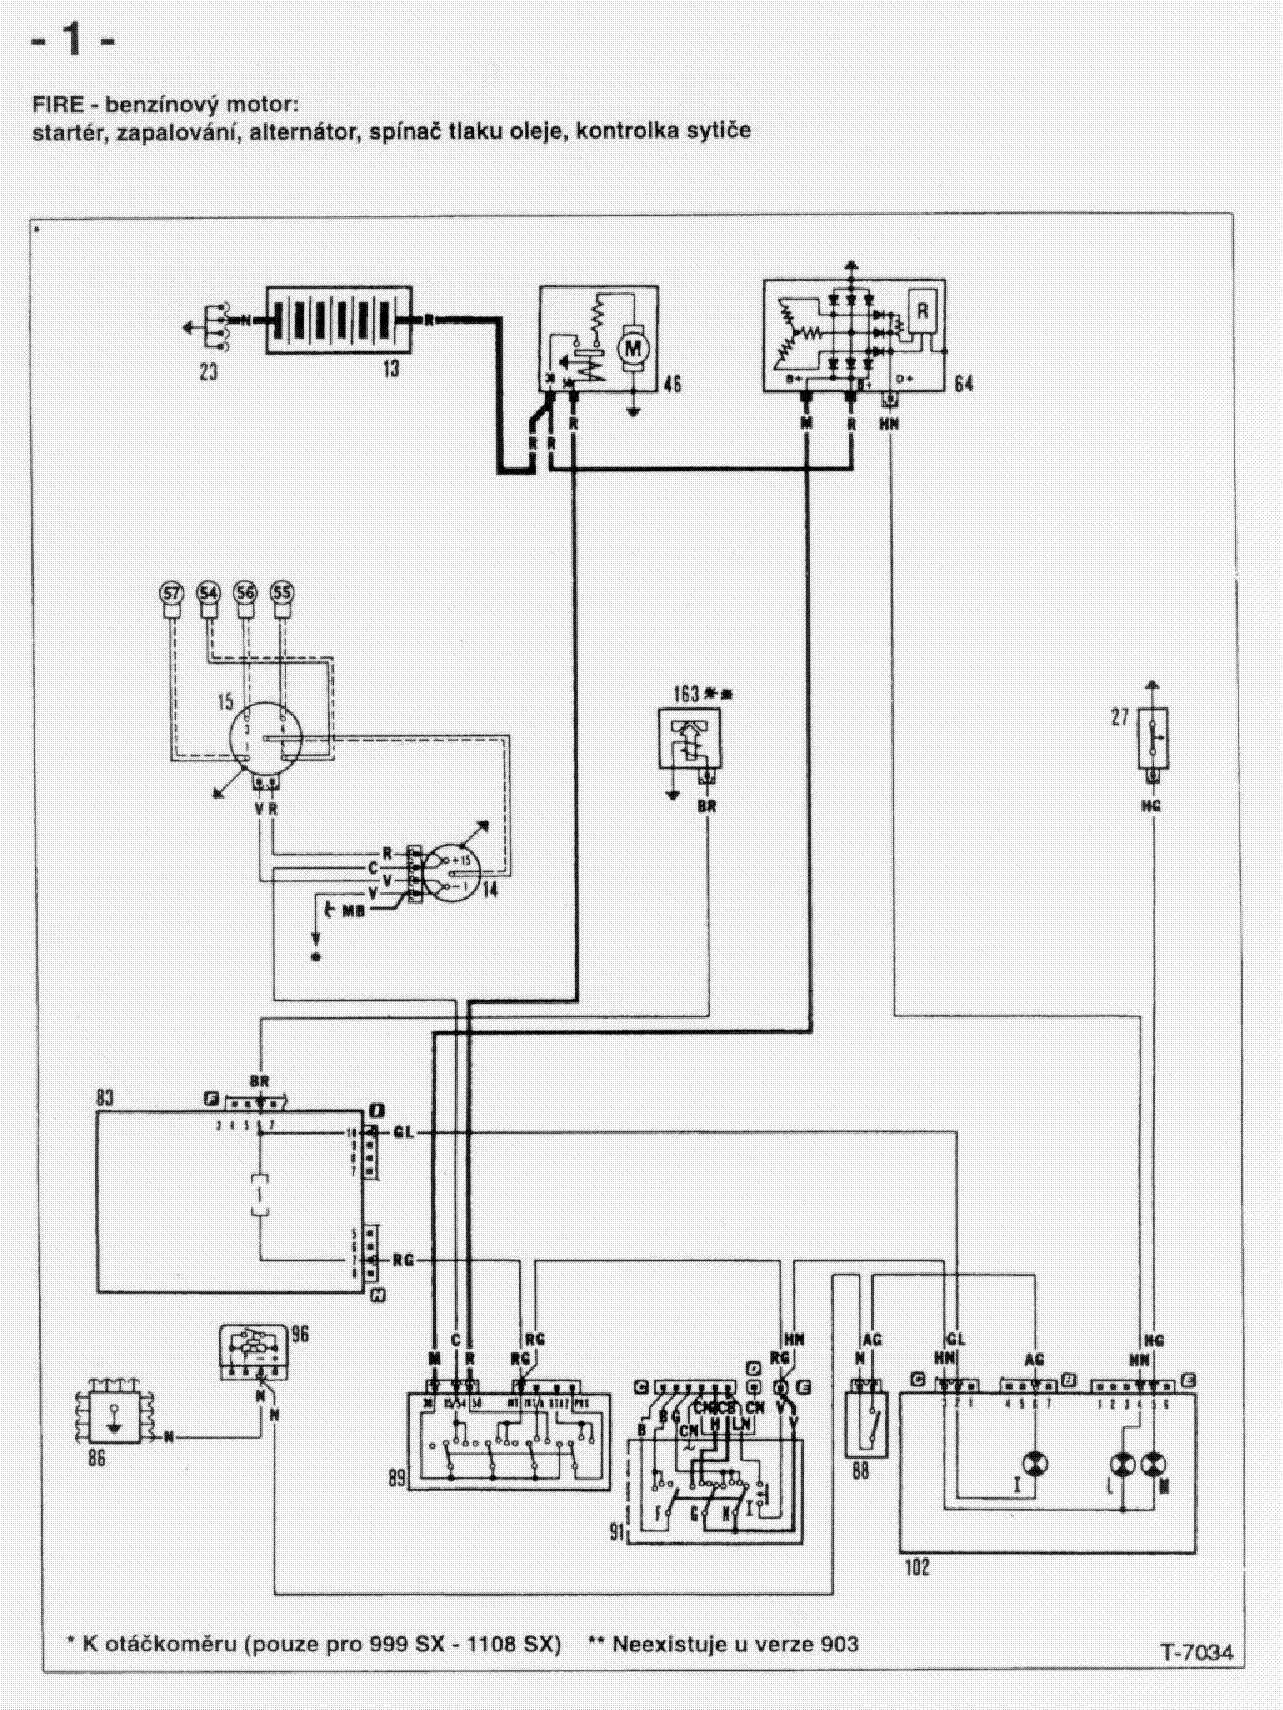 Fiat Idea Wiring Diagram Expert Schematics Grande Punto Fuse Box Cover Electrical Diagrams 2008 Suzuki Ignition